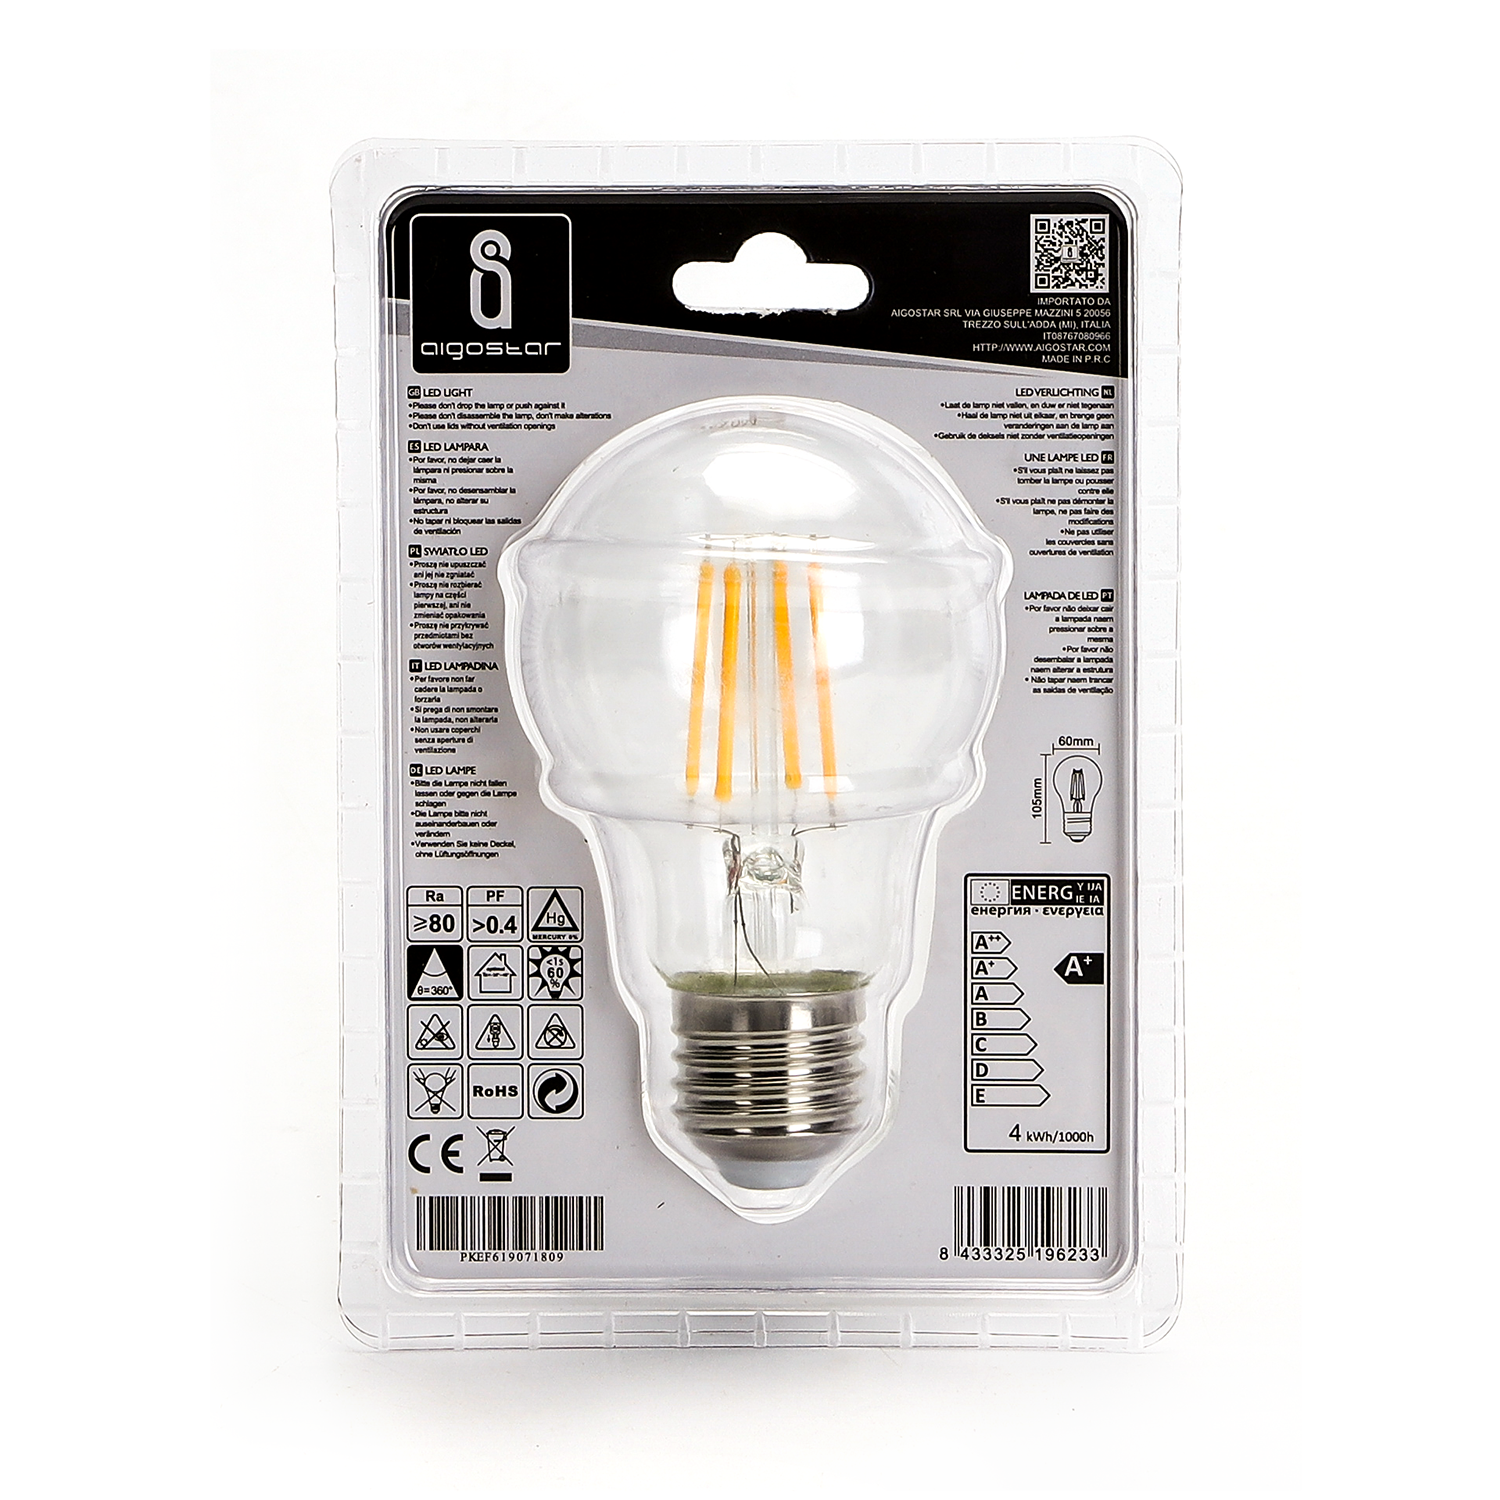 LED Filament Peer lamp 8 Watt grote fitting E27 A60 2700K Warm wit - achterkant verpakking